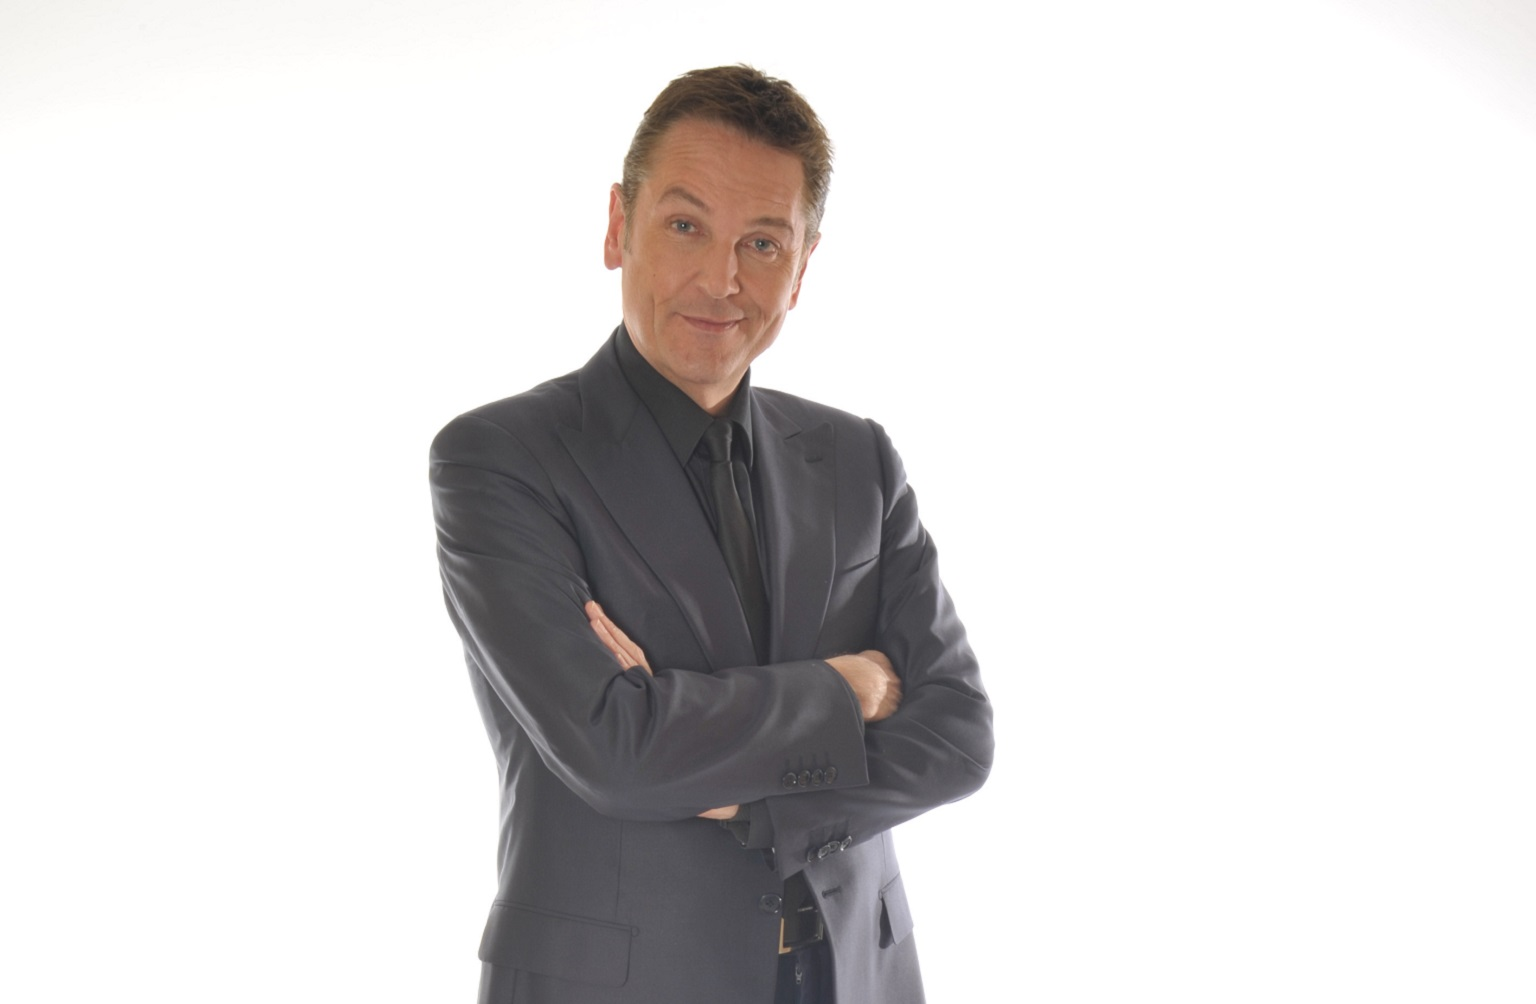 Brian Conley on his top tip for Mother's Day, who makes him laugh and what people might not know about him